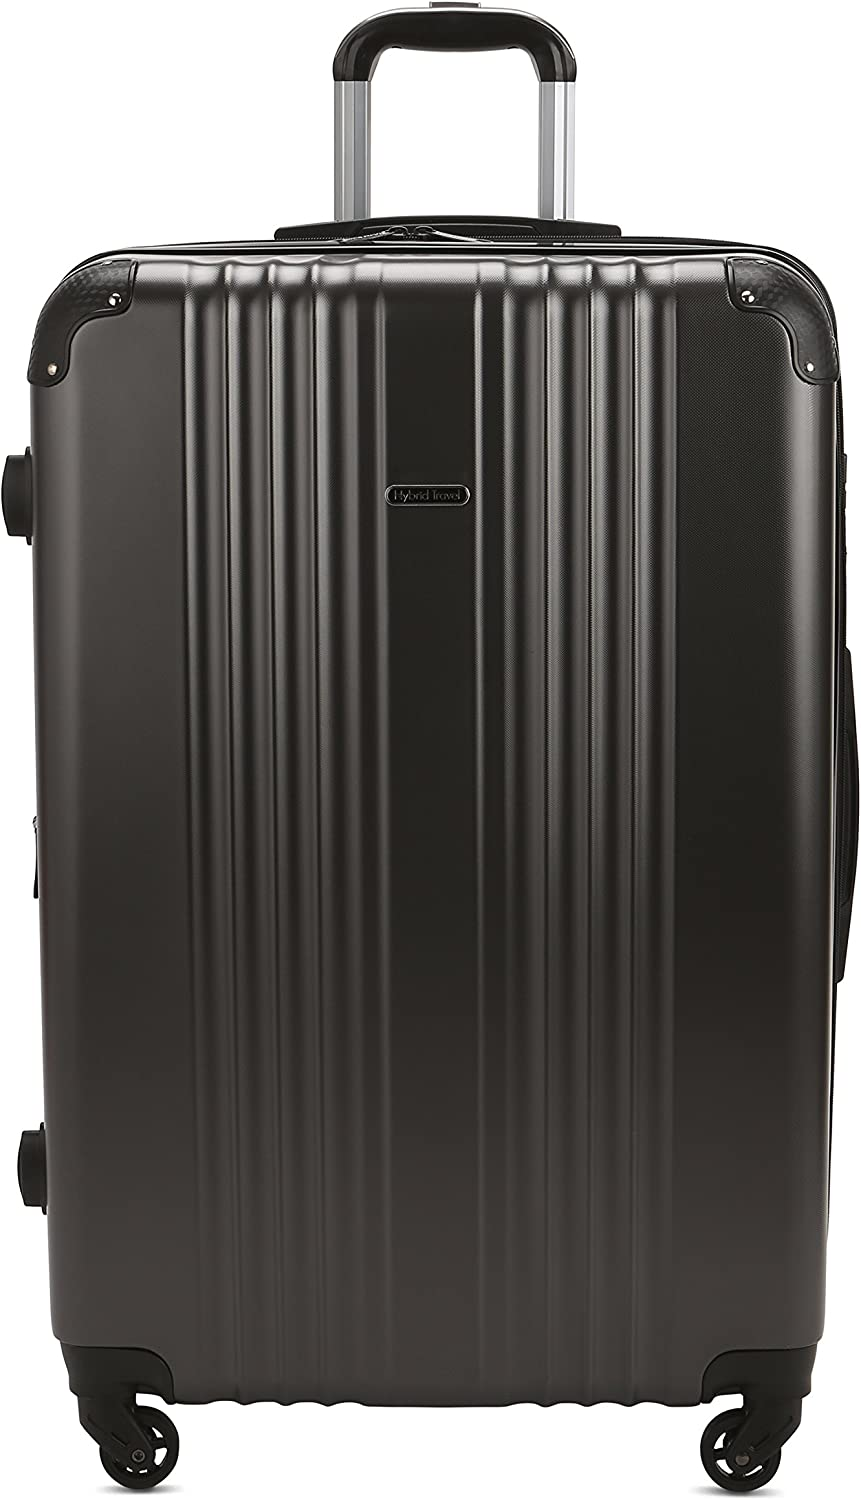 Black 3 Pieces HyBrid /& Company Luggage Set Durable Lightweight Spinner Suitcase LUG3-6111